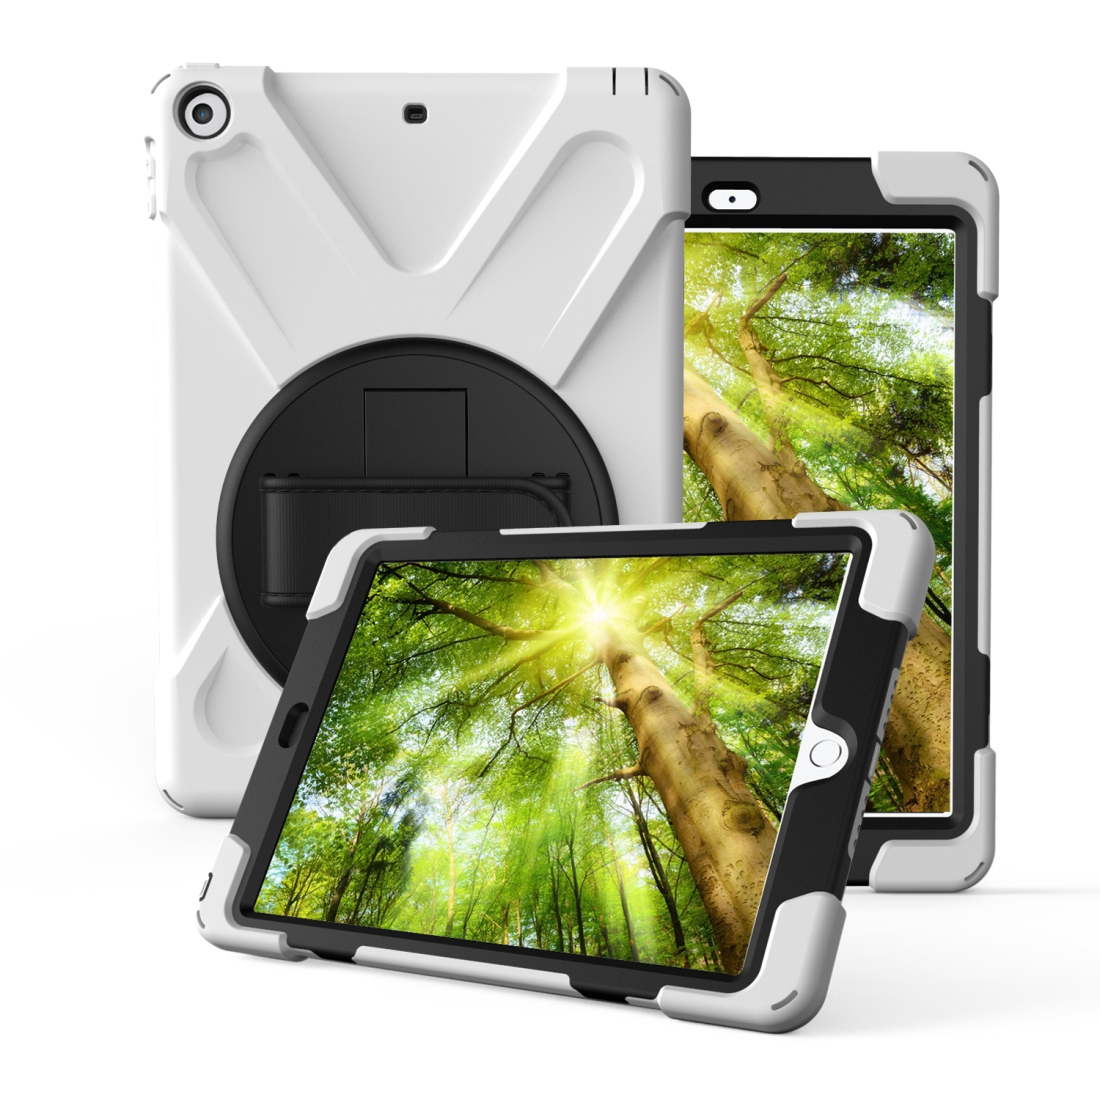 iPad 7th Generation Case (10.2 Inch) With A Protective Rotatable Design And Hand Strap (White)